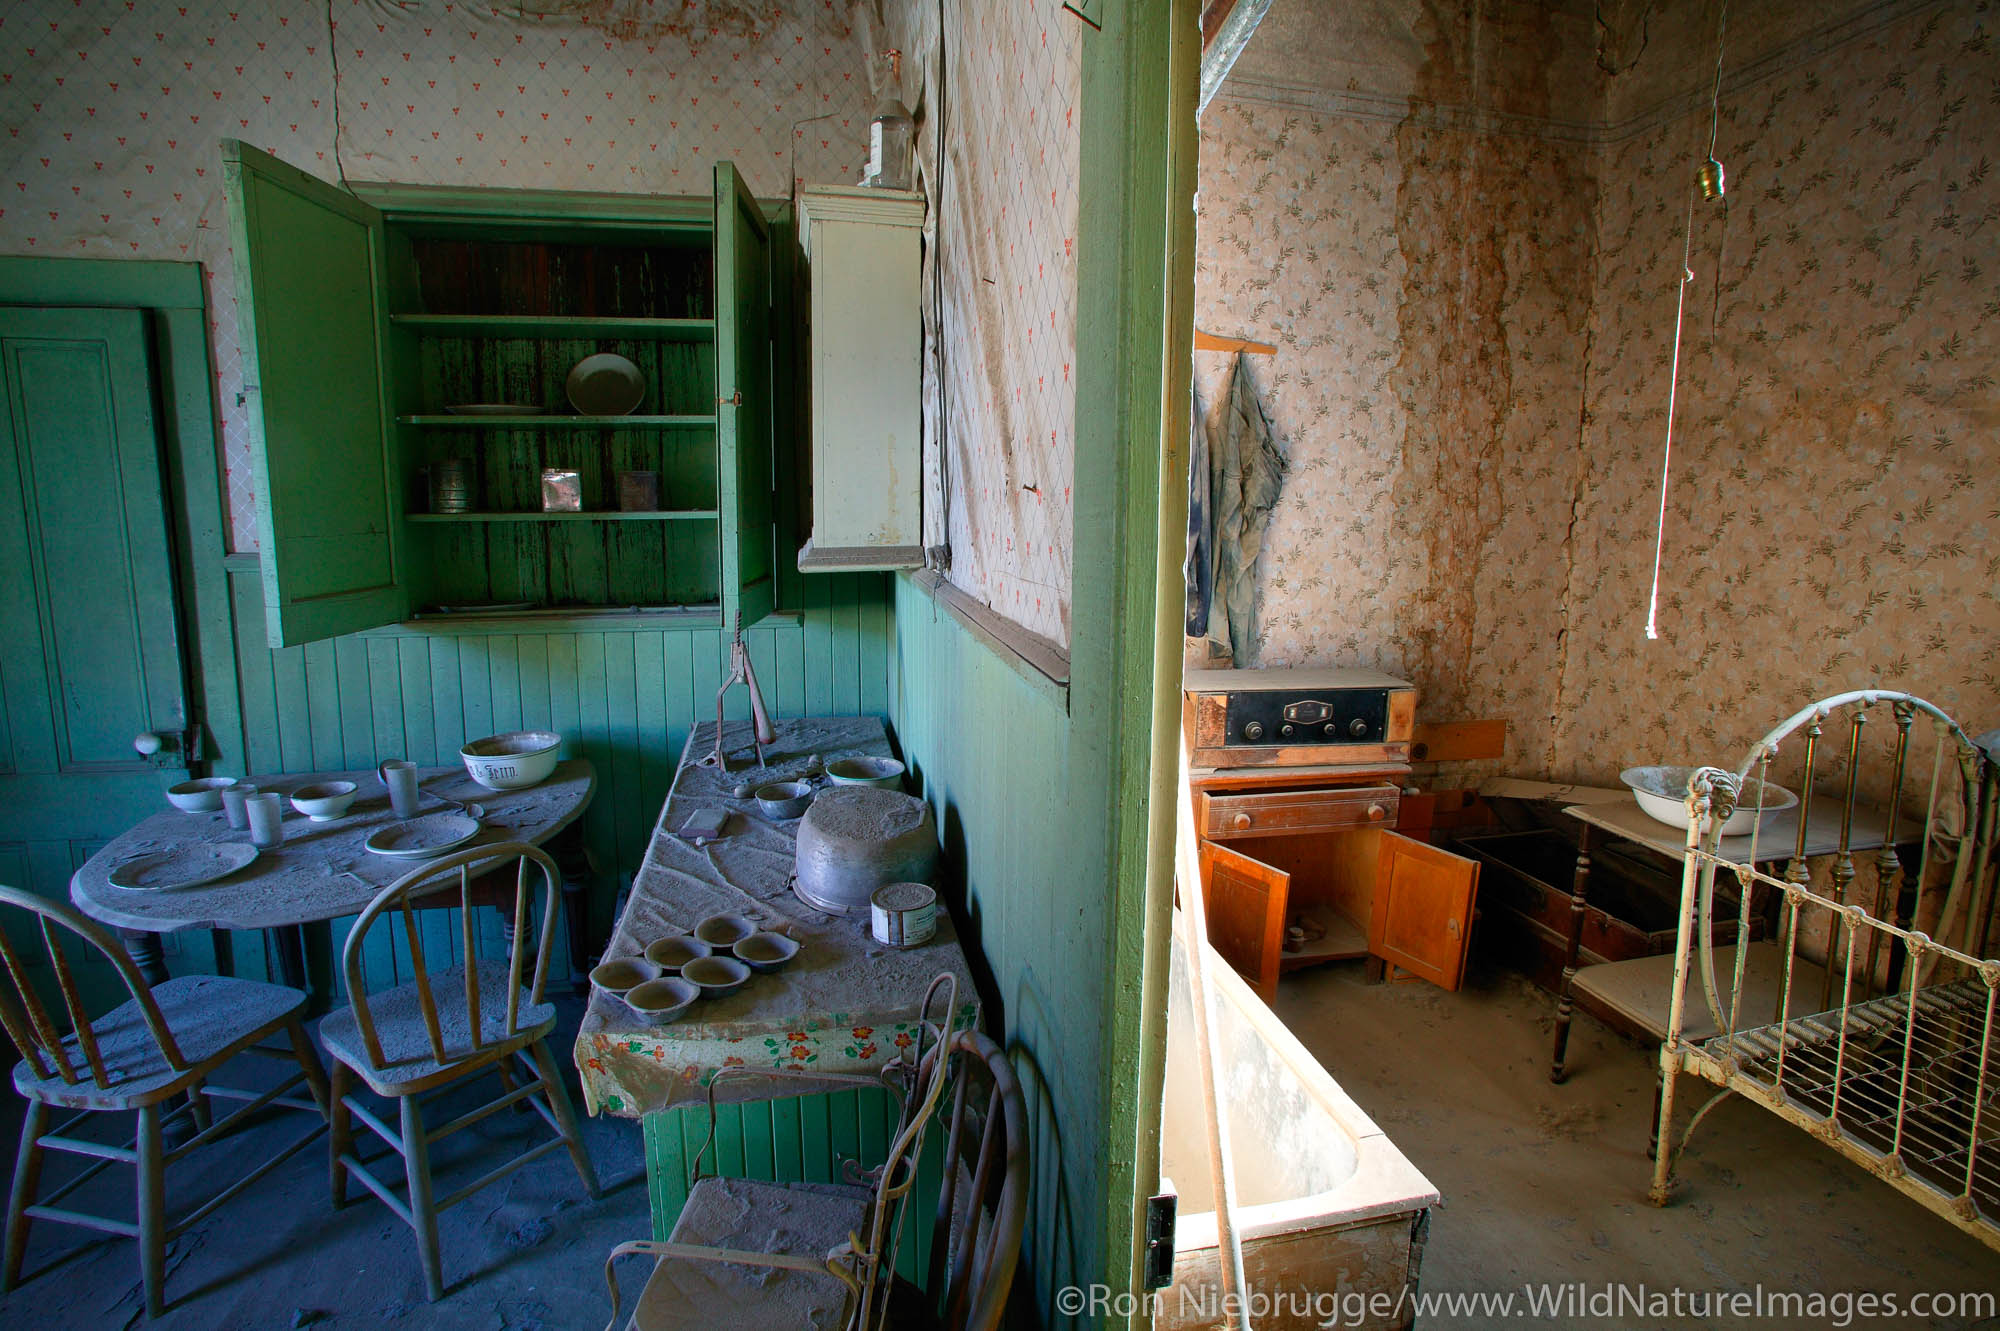 The Miller House, in the historic ghost town of Bodie.  Bodie was once a bustling gold mining town, Bodie State Historic Park...